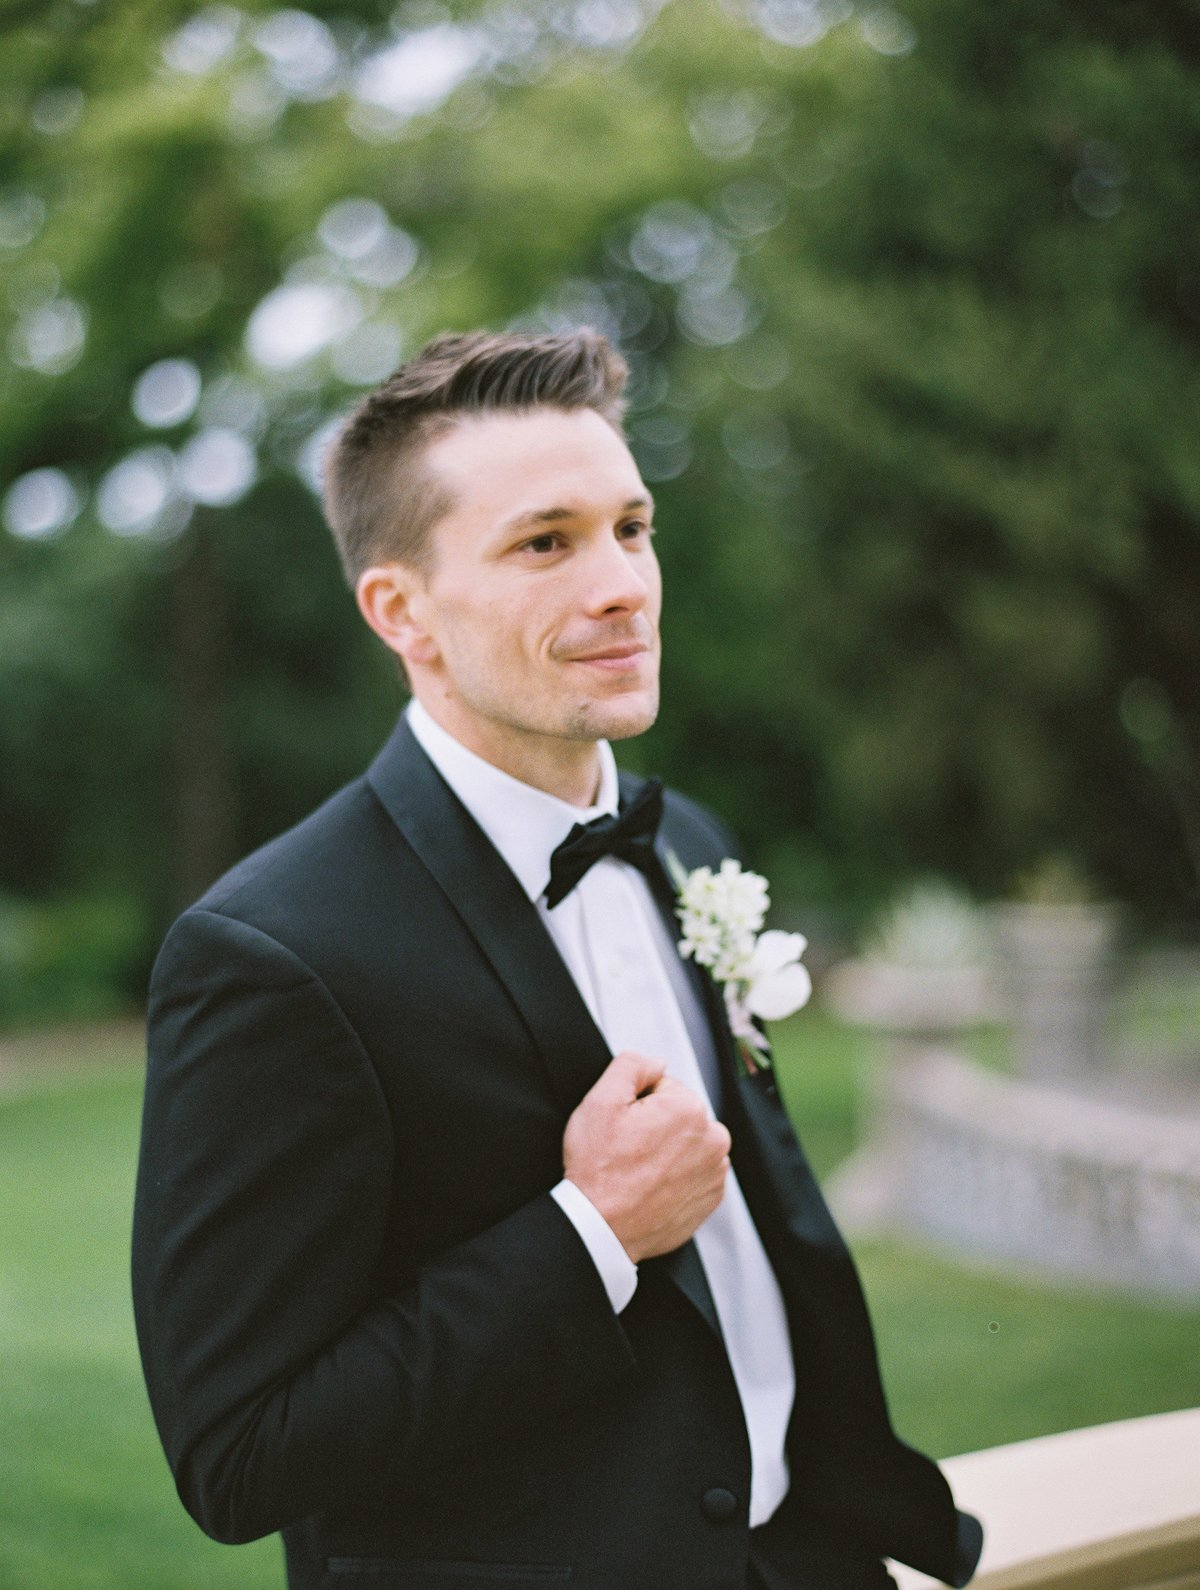 daniel-and-bethany-weddings-groom-in-tux